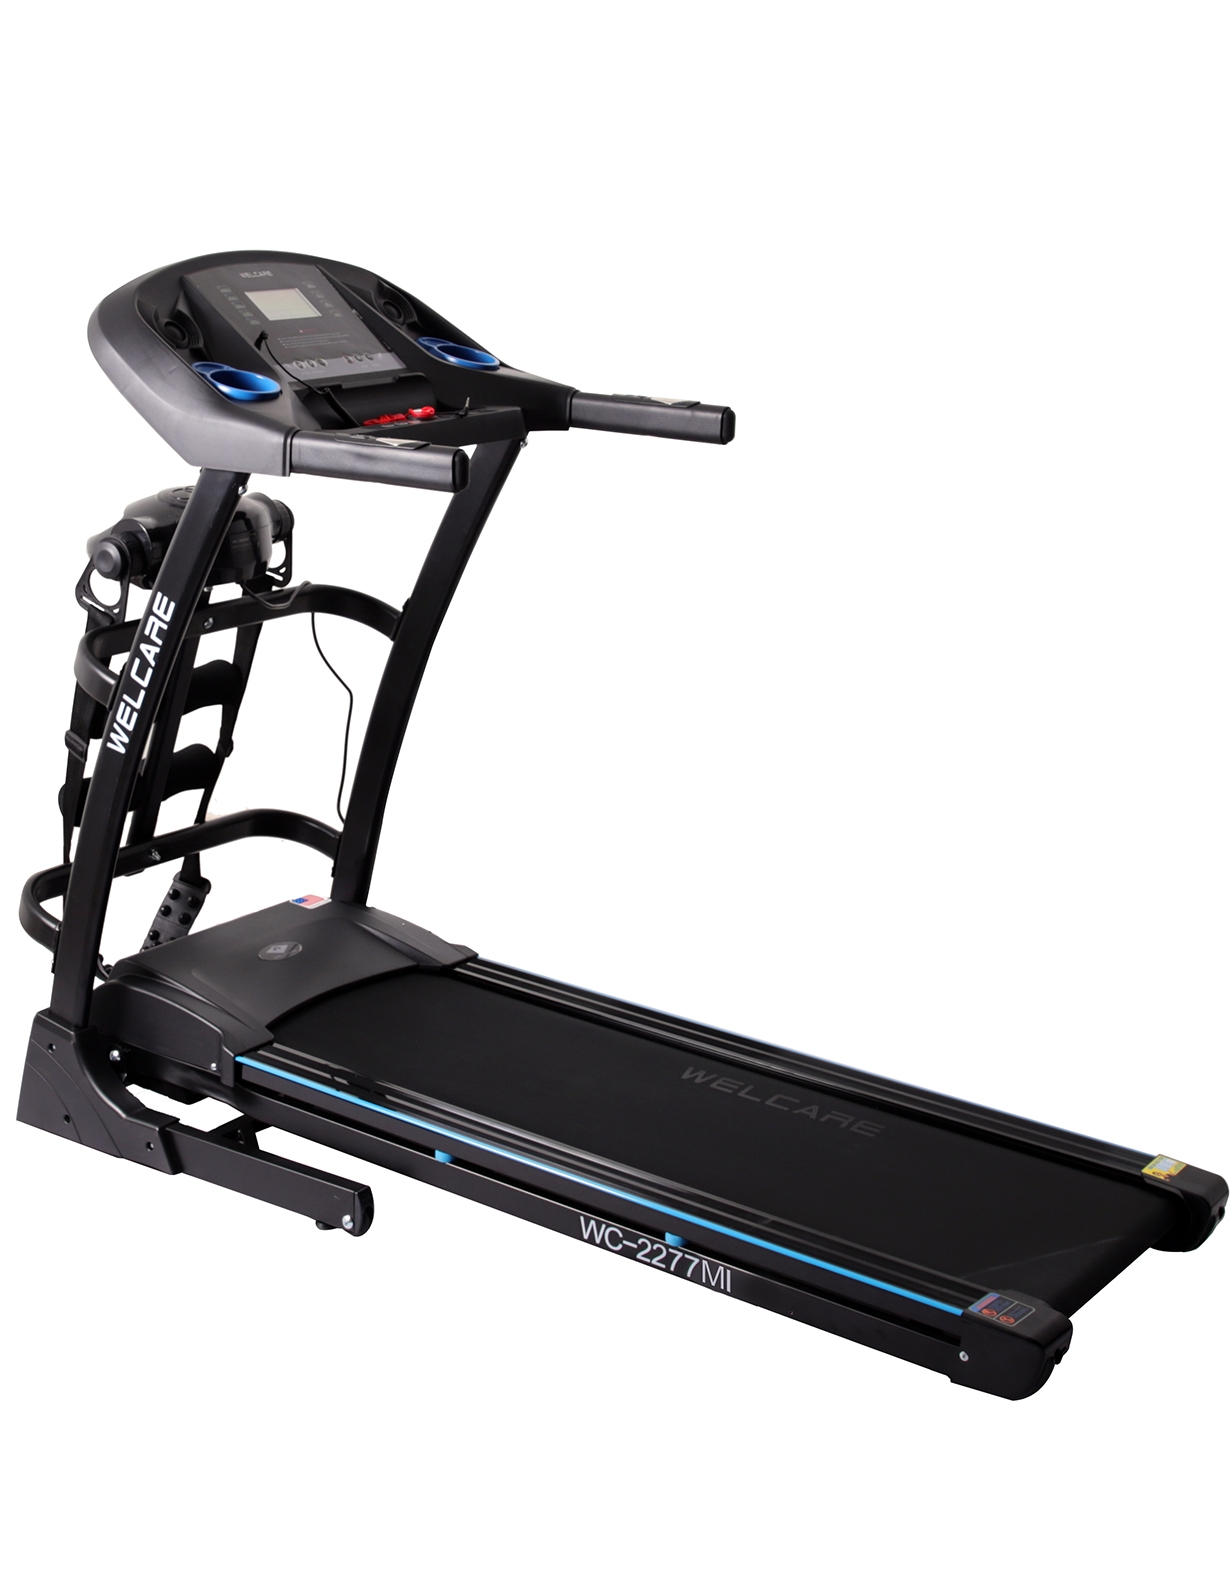 WC 2277MI MOTORIZED TREADMILL